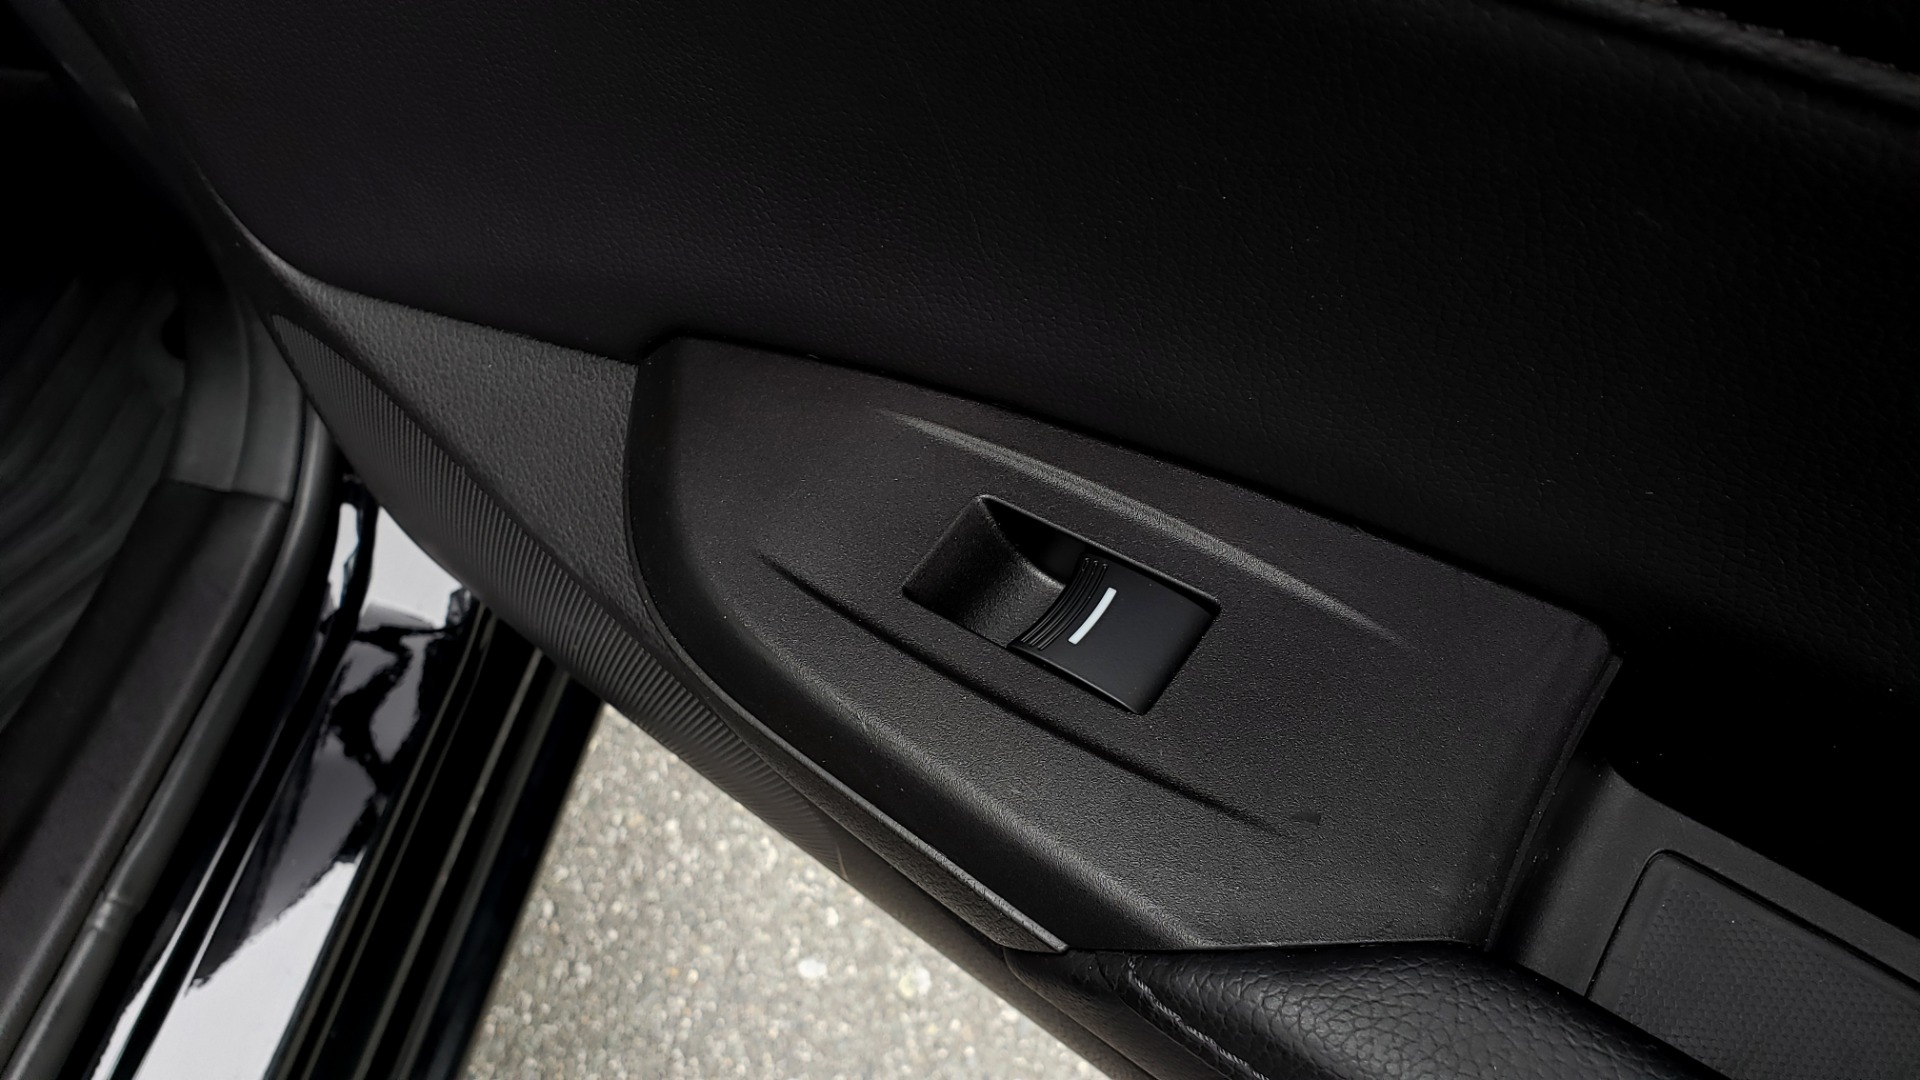 Used 2013 Acura ILX TECH PKG / SUNROOF / NAV / DUAL-ZONE A/C / REARVIEW for sale Sold at Formula Imports in Charlotte NC 28227 63